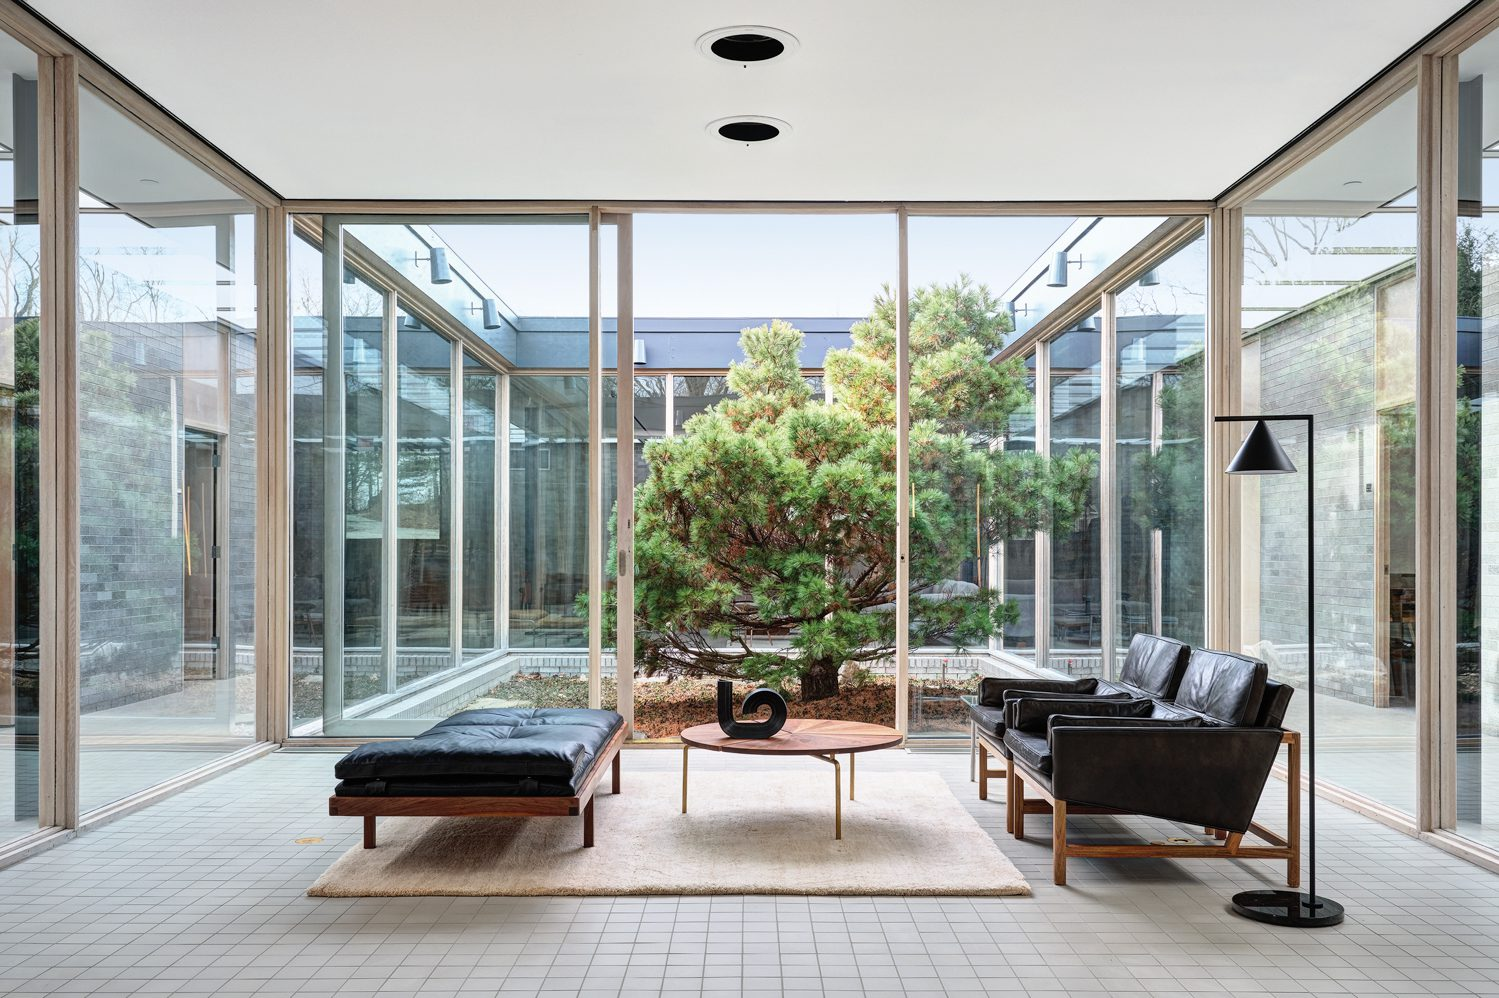 A recently planted Japanese dwarf white pine in the open-air courtyard, which adjoins a conference room with Wood Frame lounge chairs. Photography by Michael Biondo.